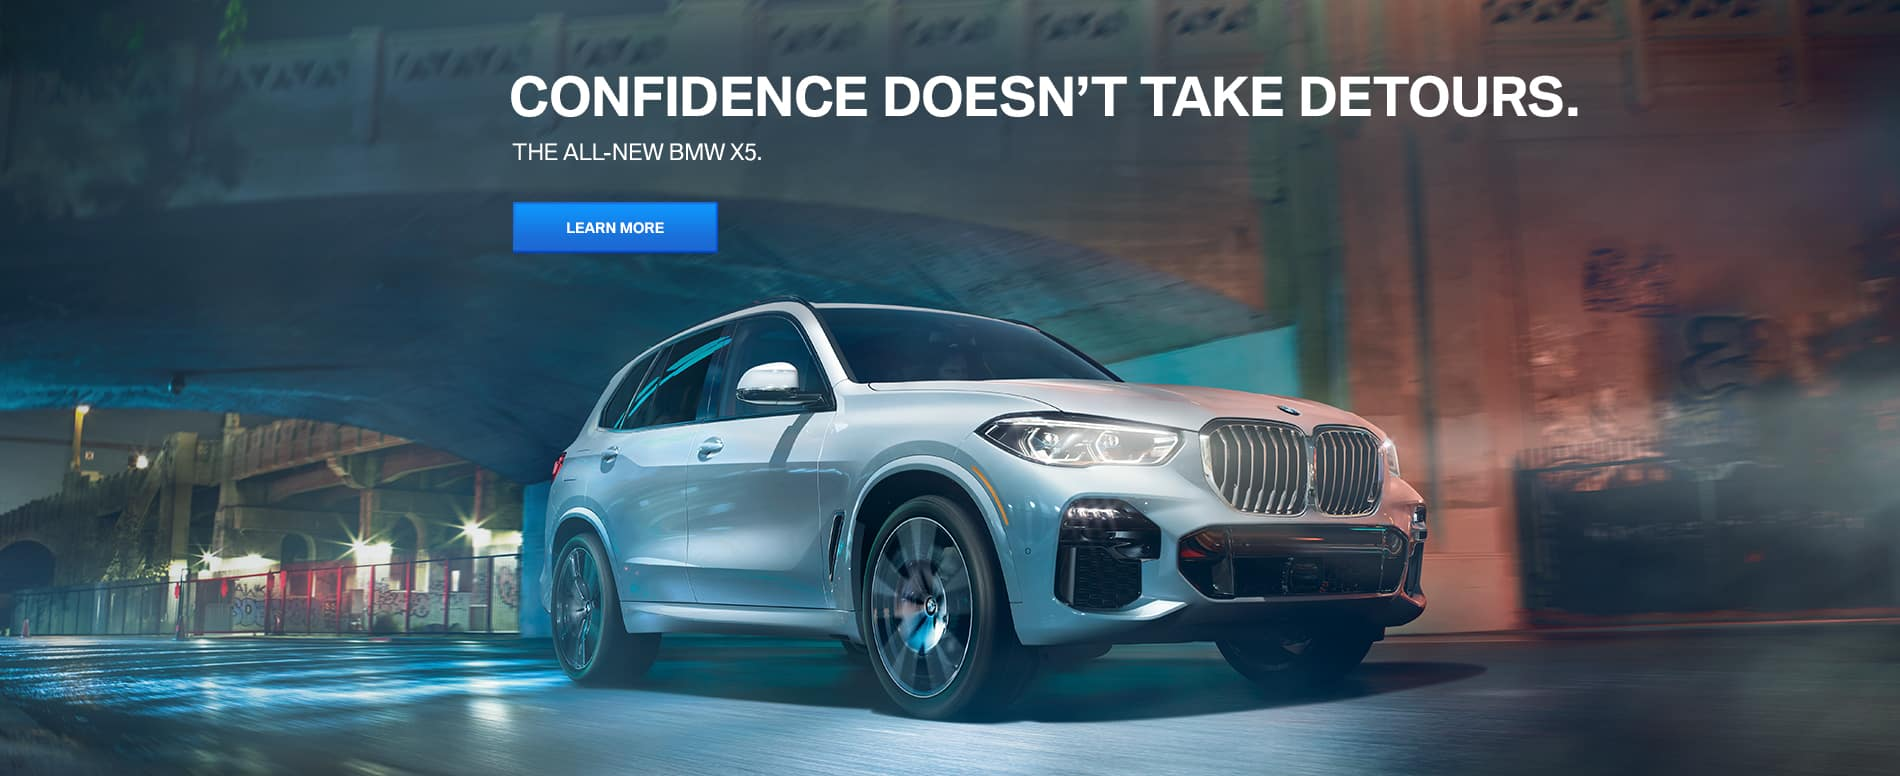 BMW Of Columbia | BMW Dealer In Columbia, SC